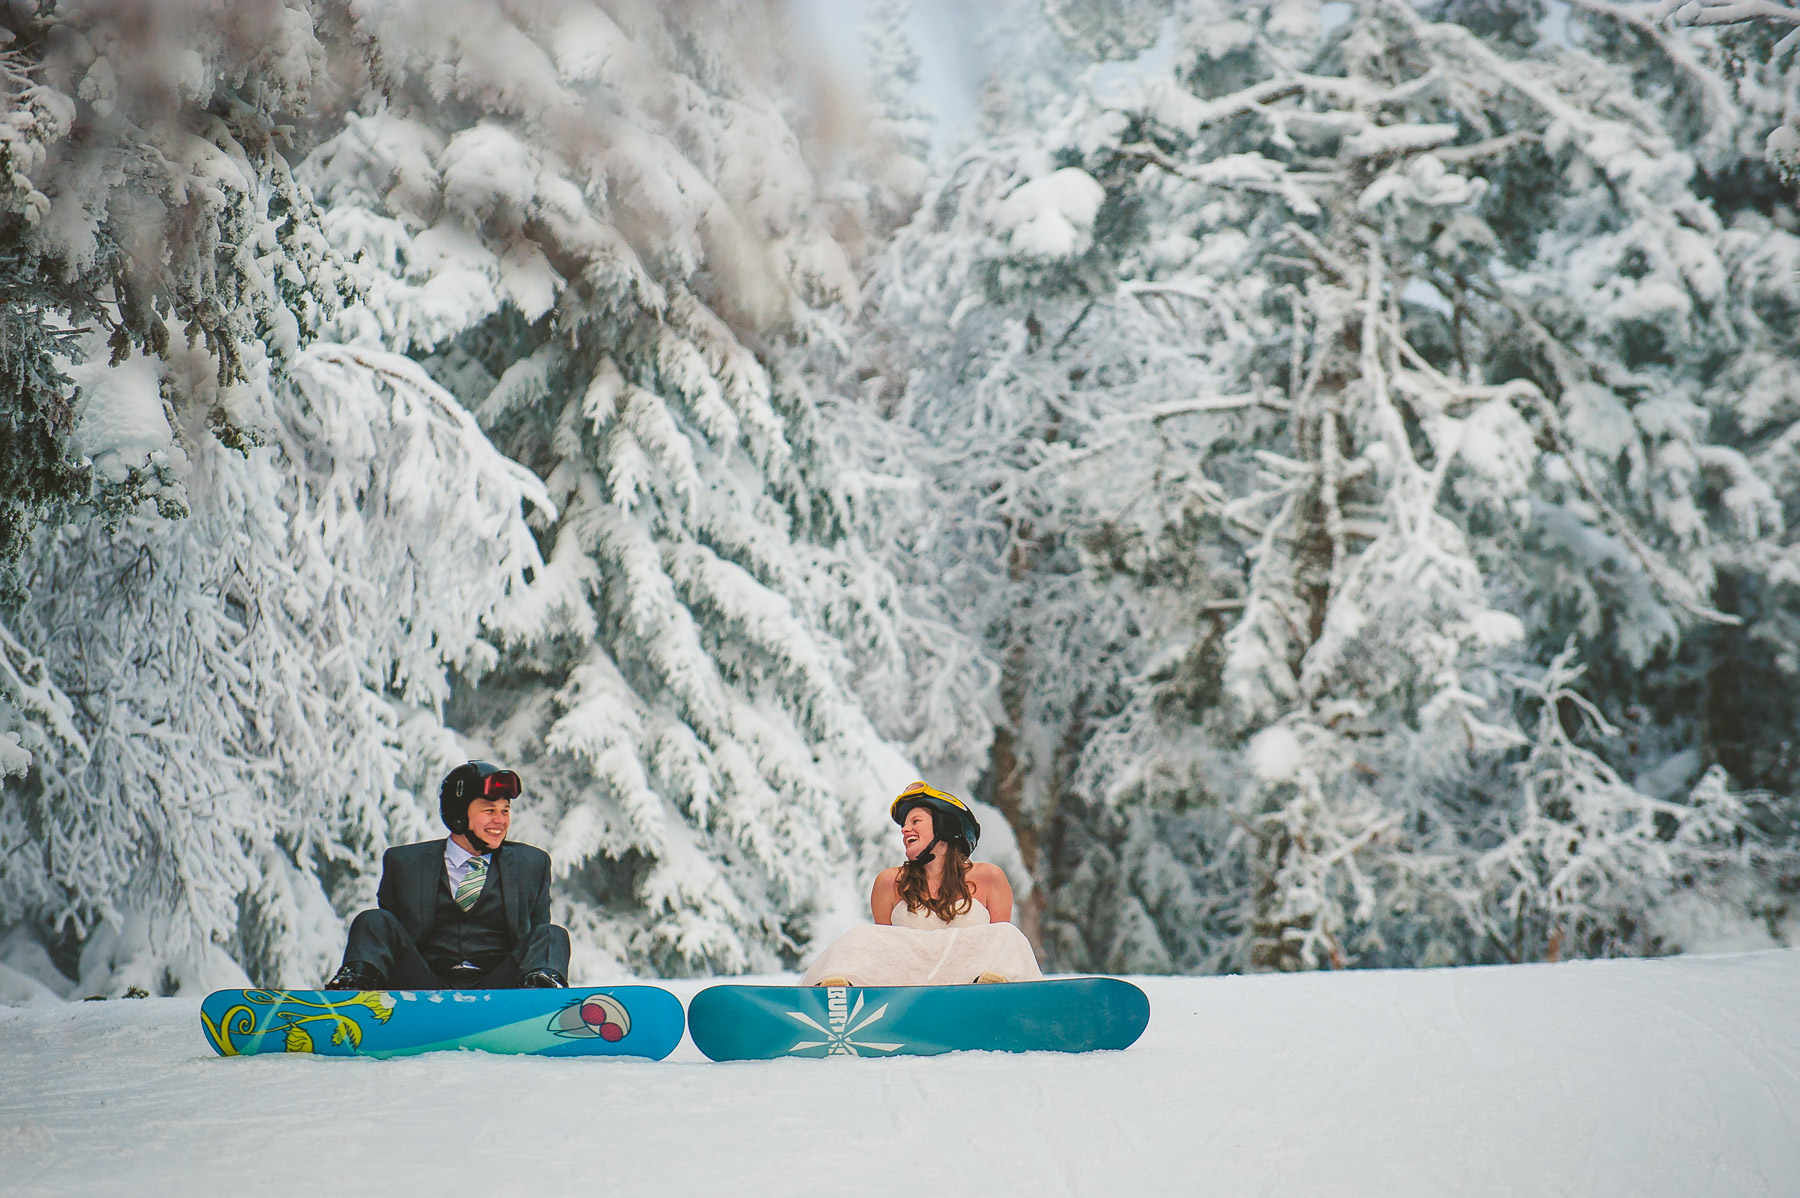 Adventurous Snowboarding elopement photography